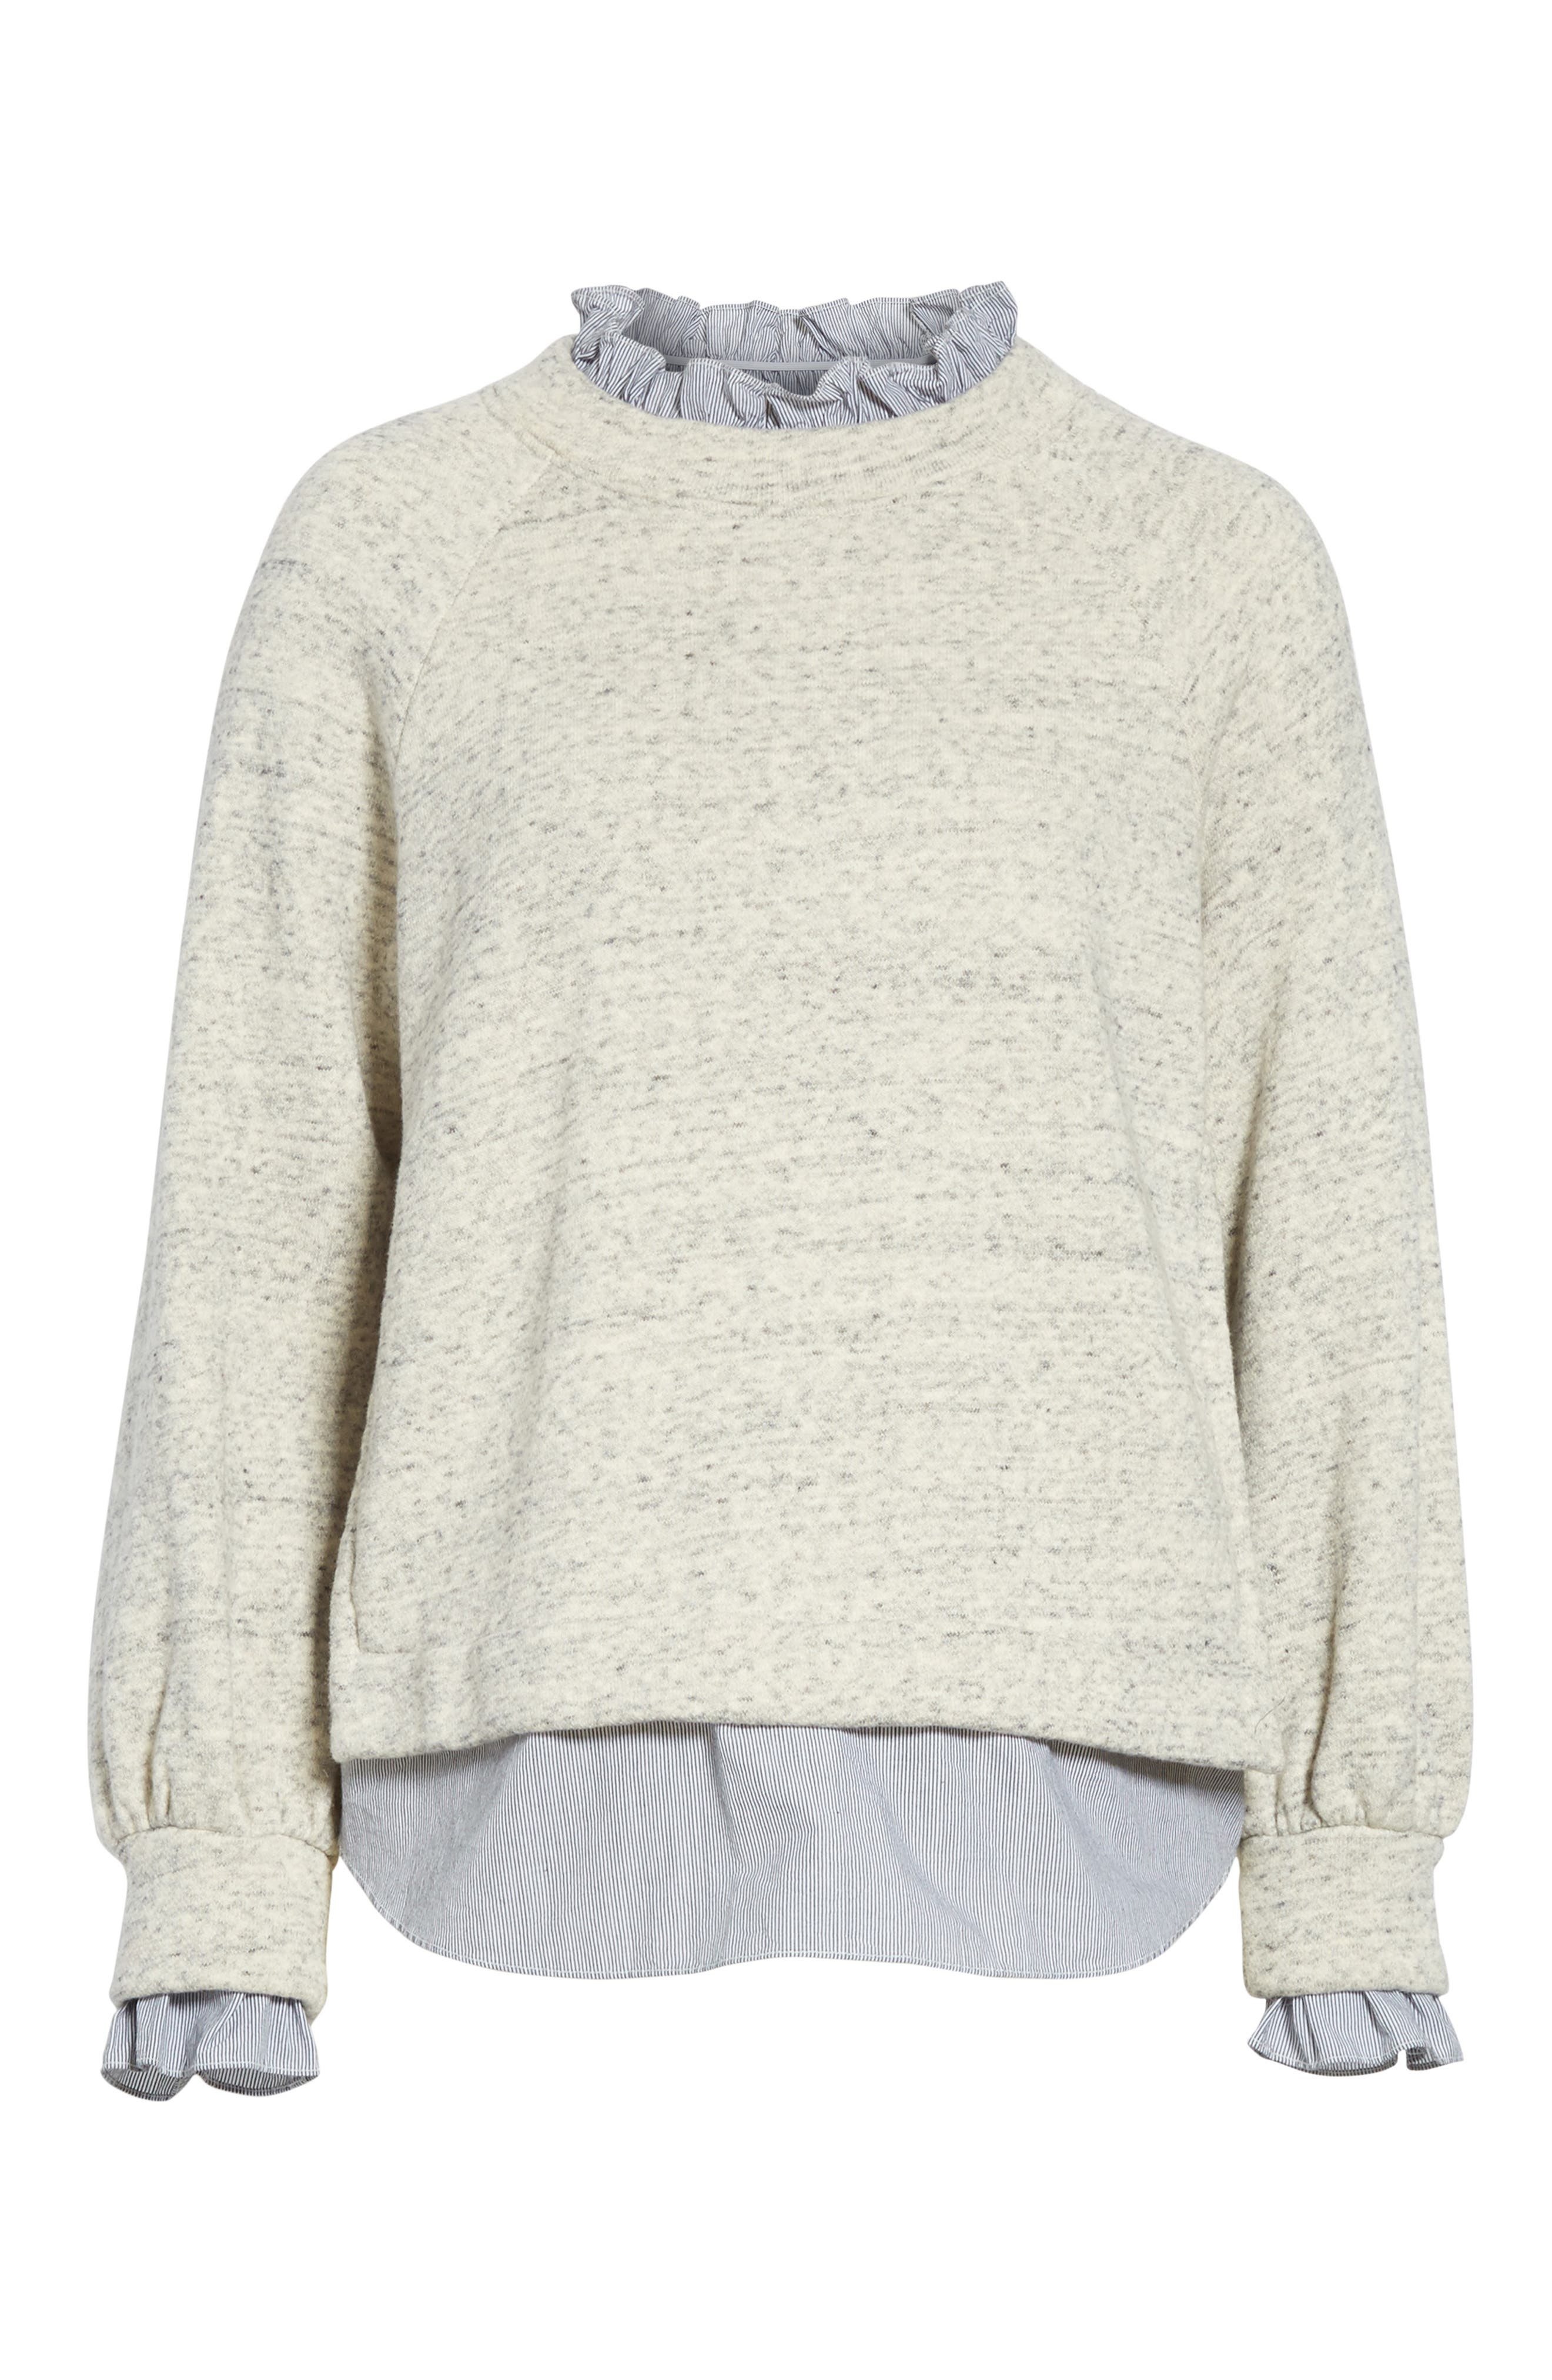 French Terry & Poplin Pullover,                             Alternate thumbnail 6, color,                             Grey Speckle